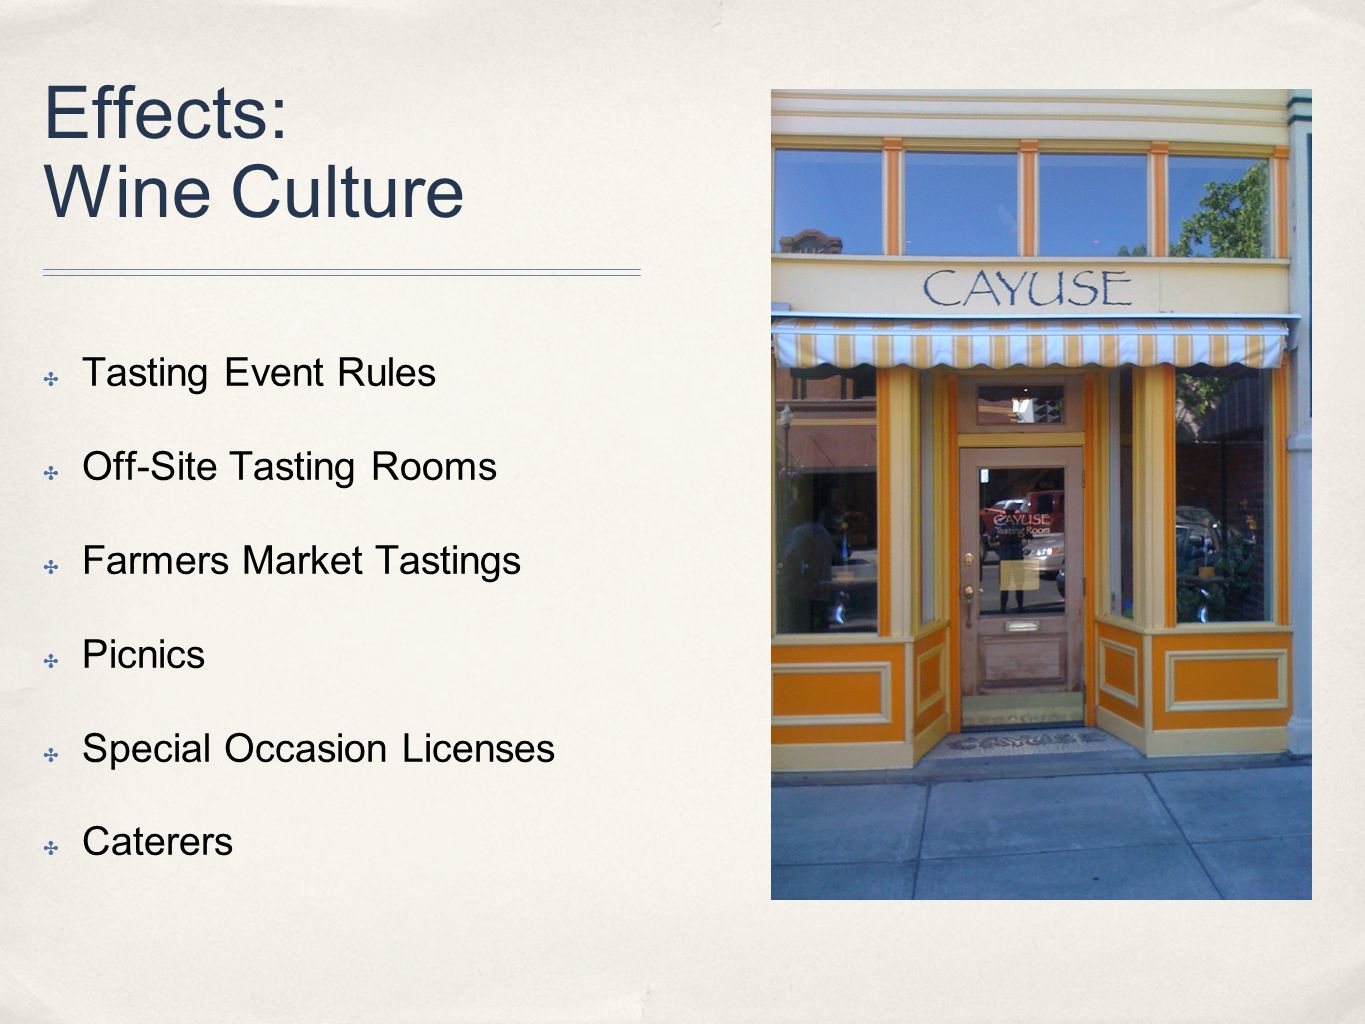 Effects: Wine Culture ✤ Tasting Event Rules ✤ Off-Site Tasting Rooms ✤ Farmers Market Tastings ✤ Picnics ✤ Special Occasion Licenses ✤ Caterers